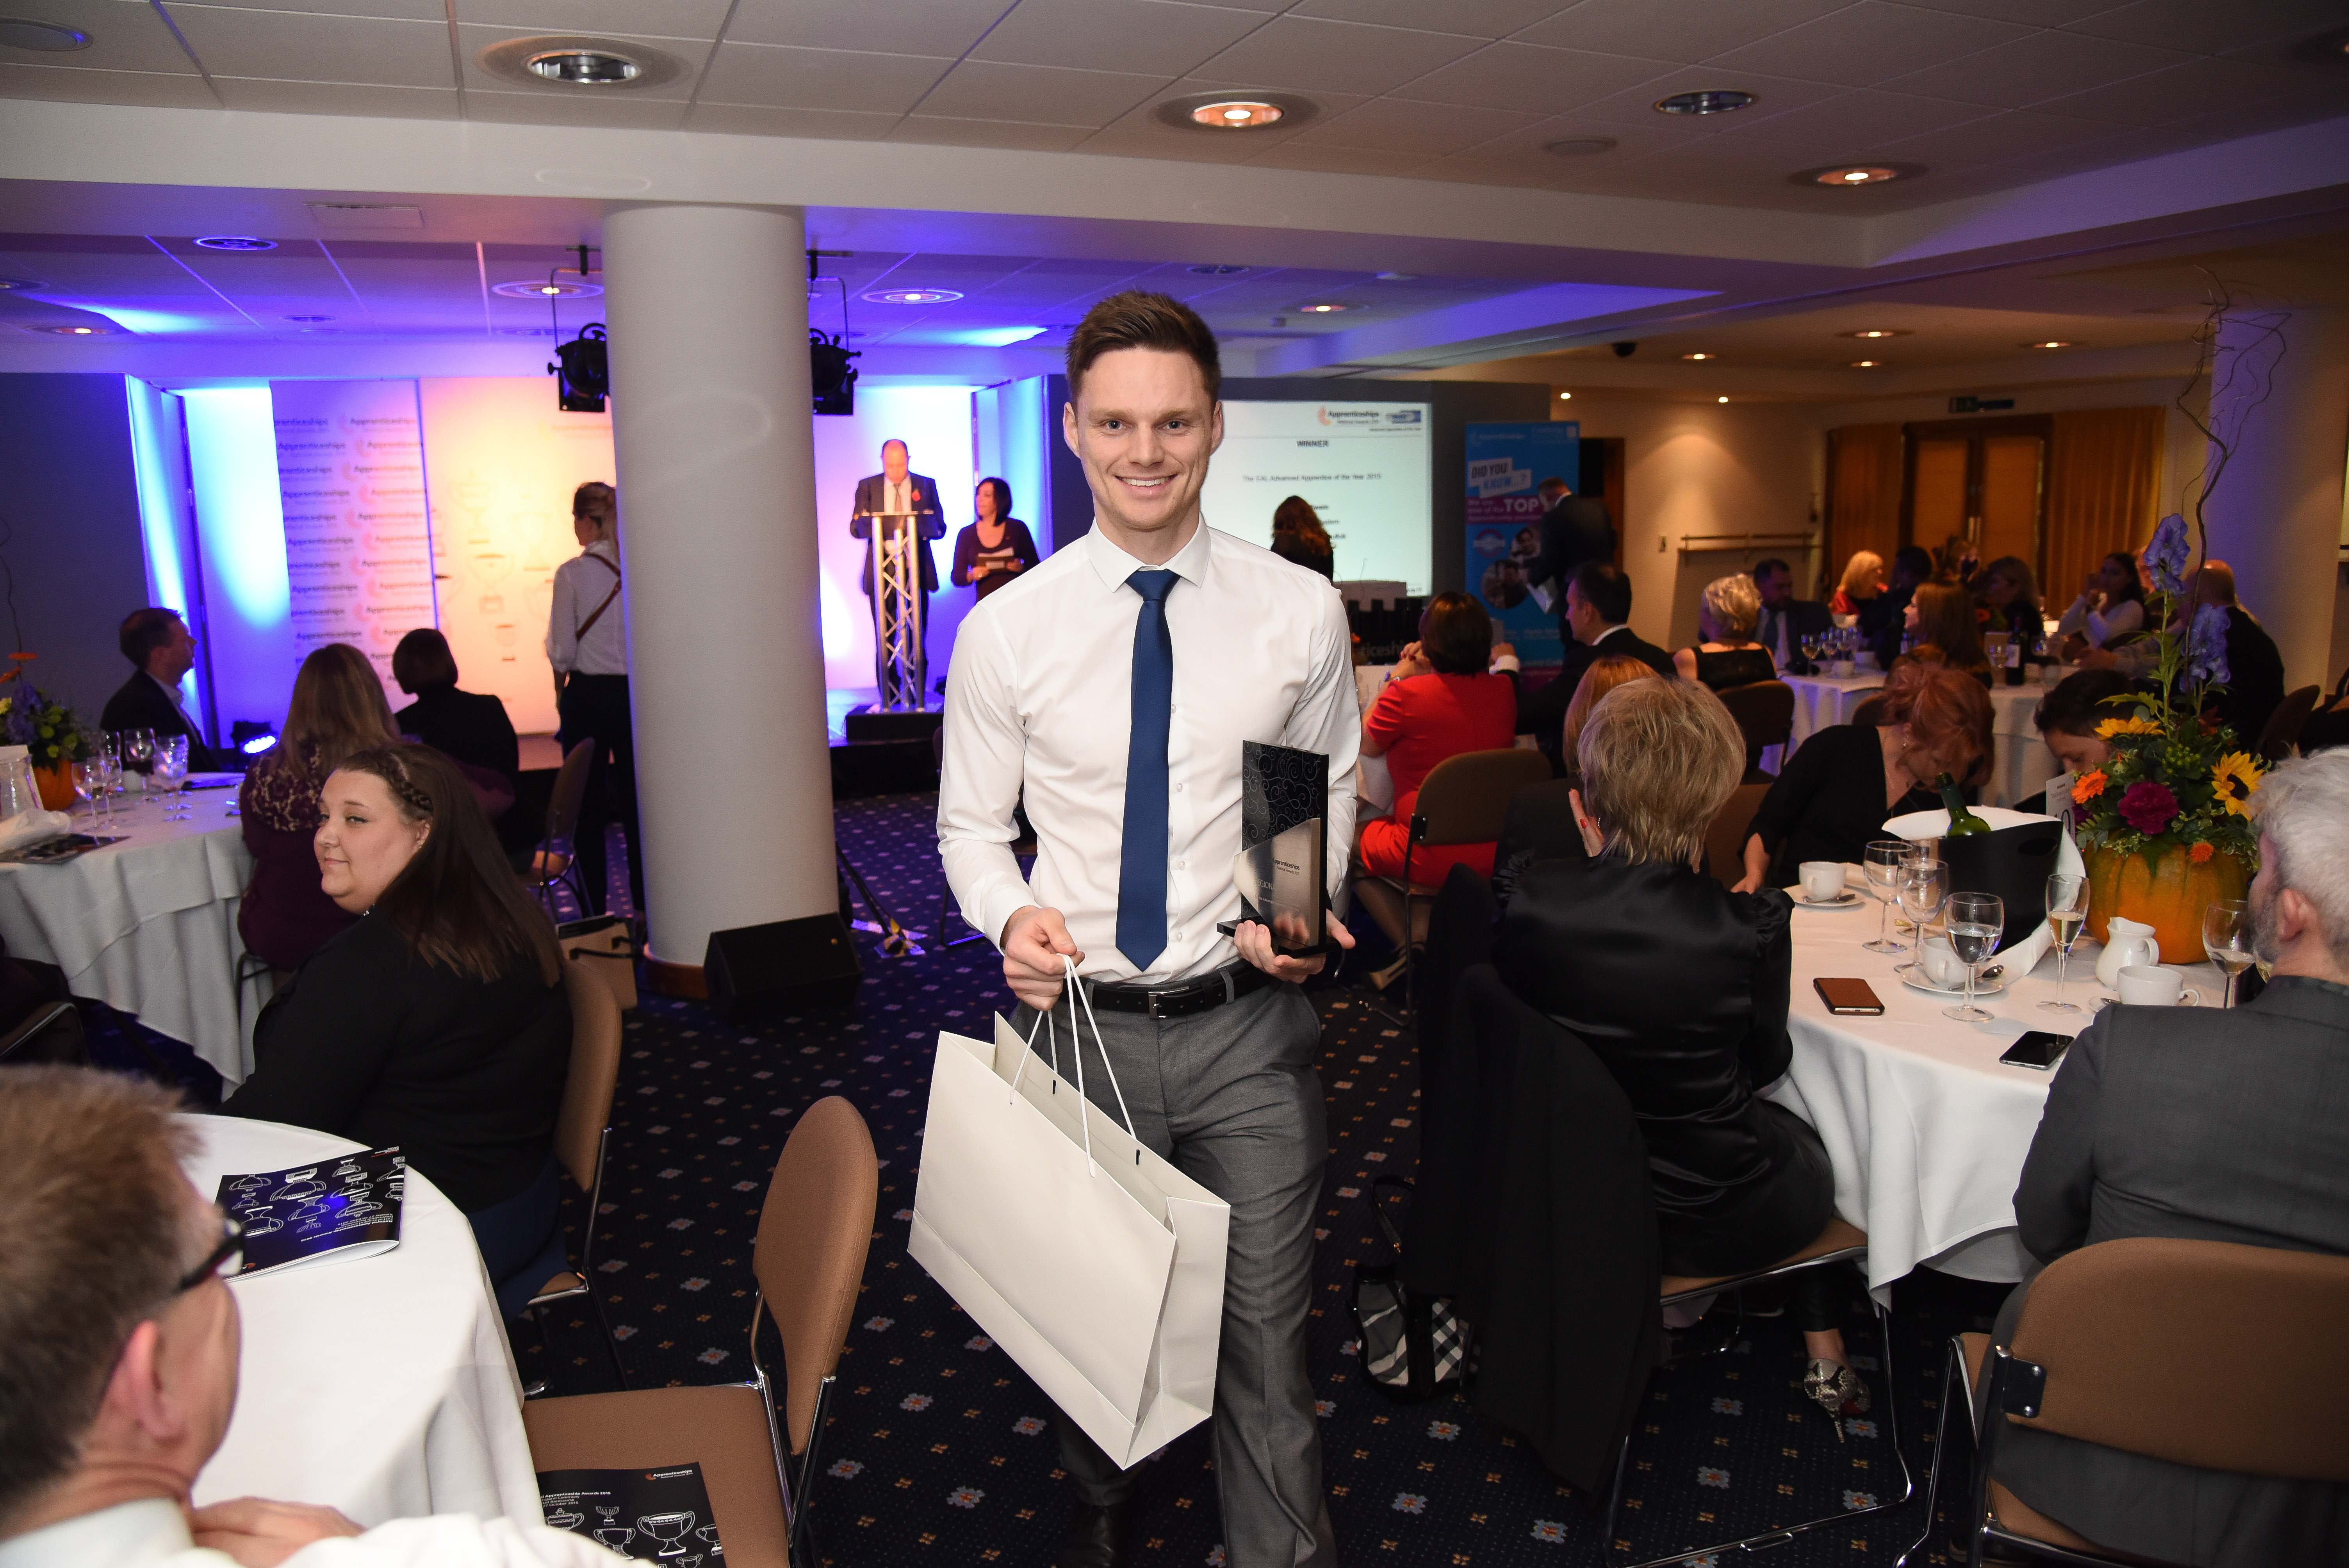 EAL Advanced Apprentice of the Year award winner for the East of England, Daniel Swain